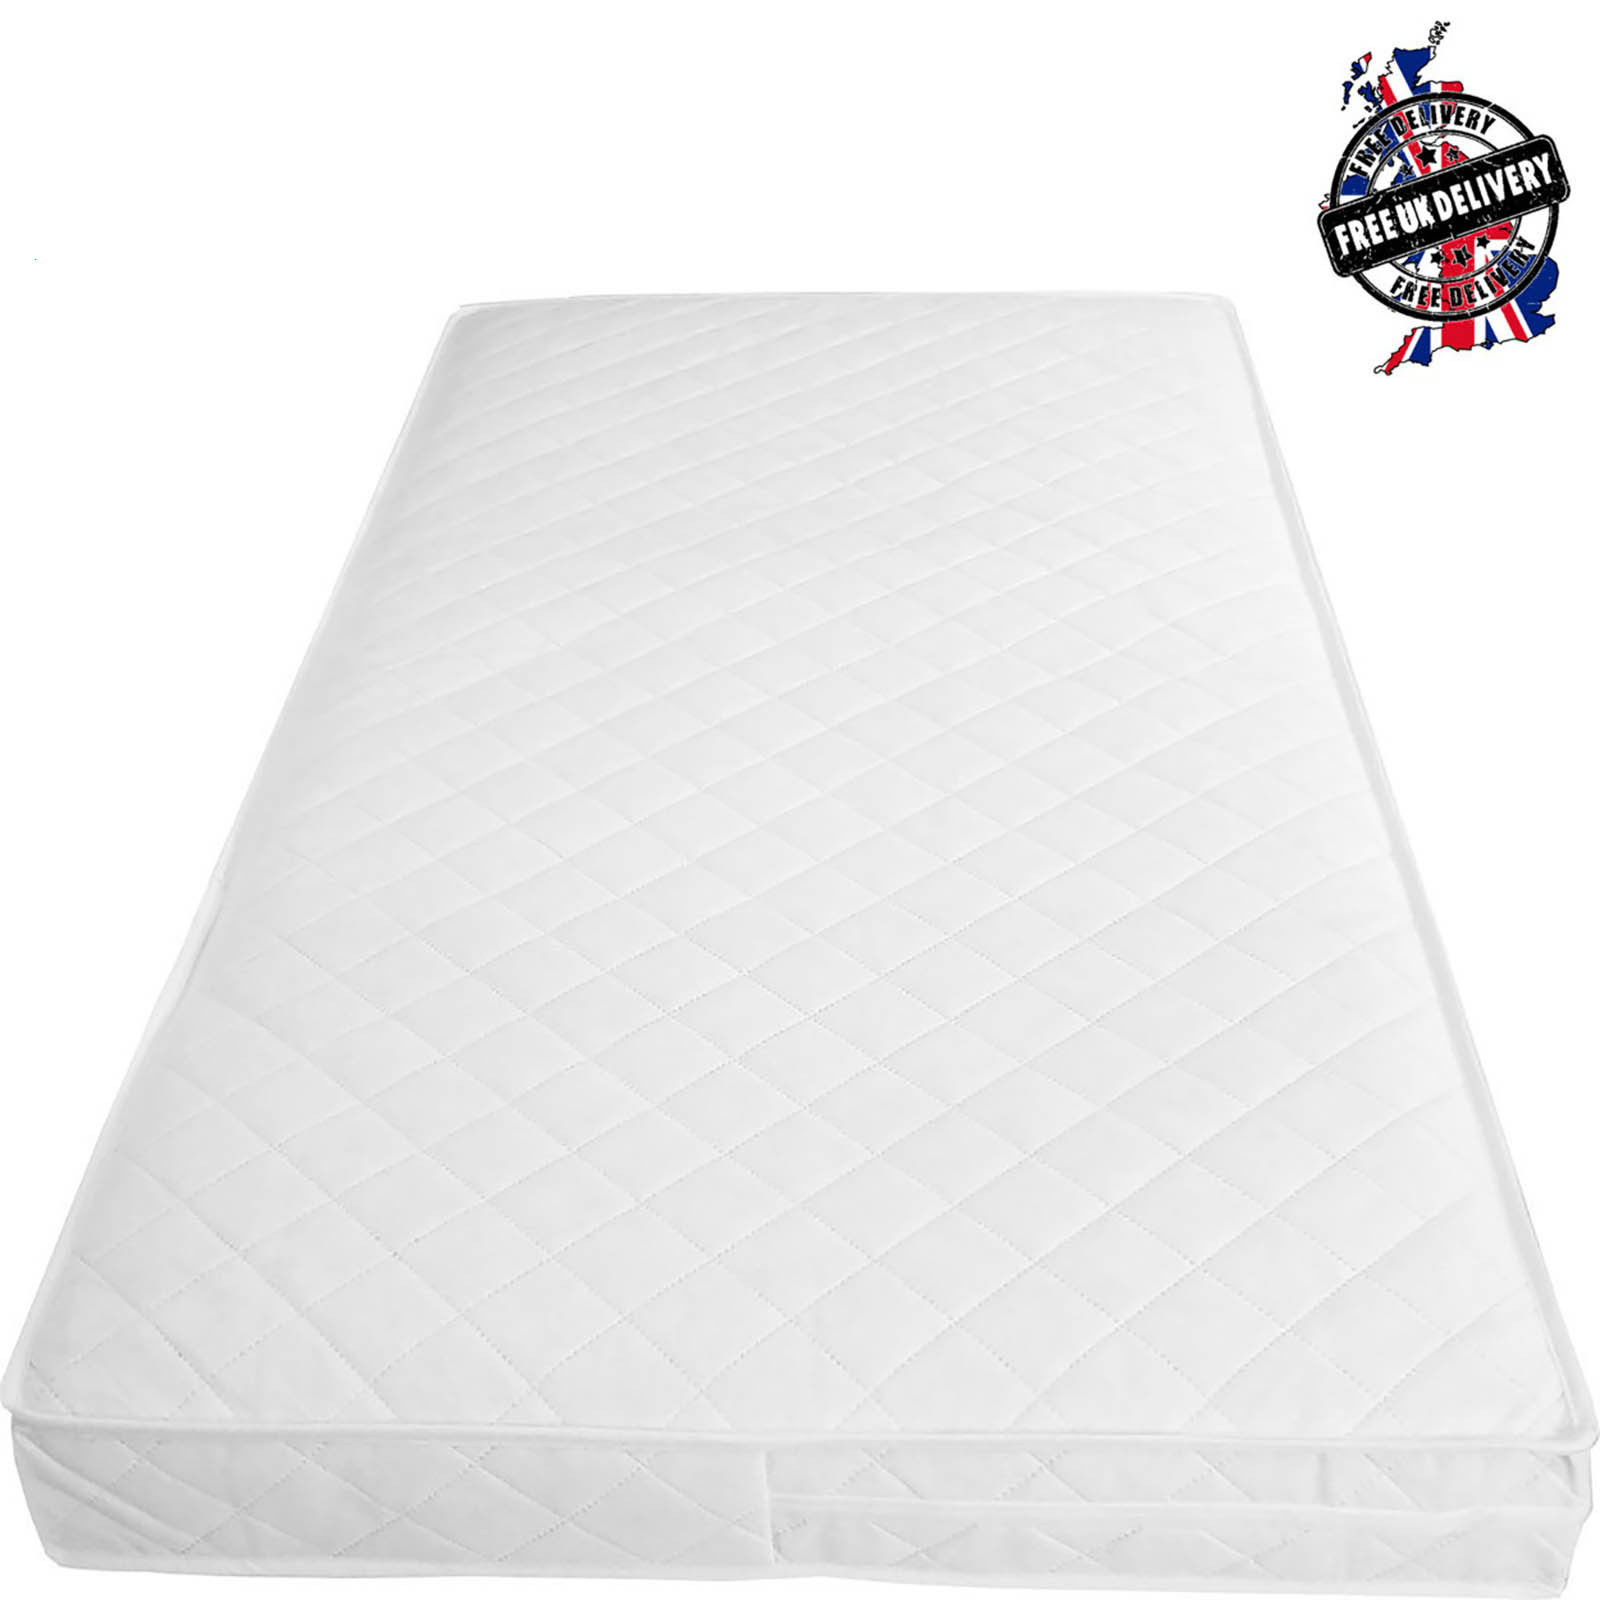 new concept 423a9 d2d06 Baby Toddler Cot Bed Breathable QUILTED AND WATERPROOF Foam Mattress All  Sizes